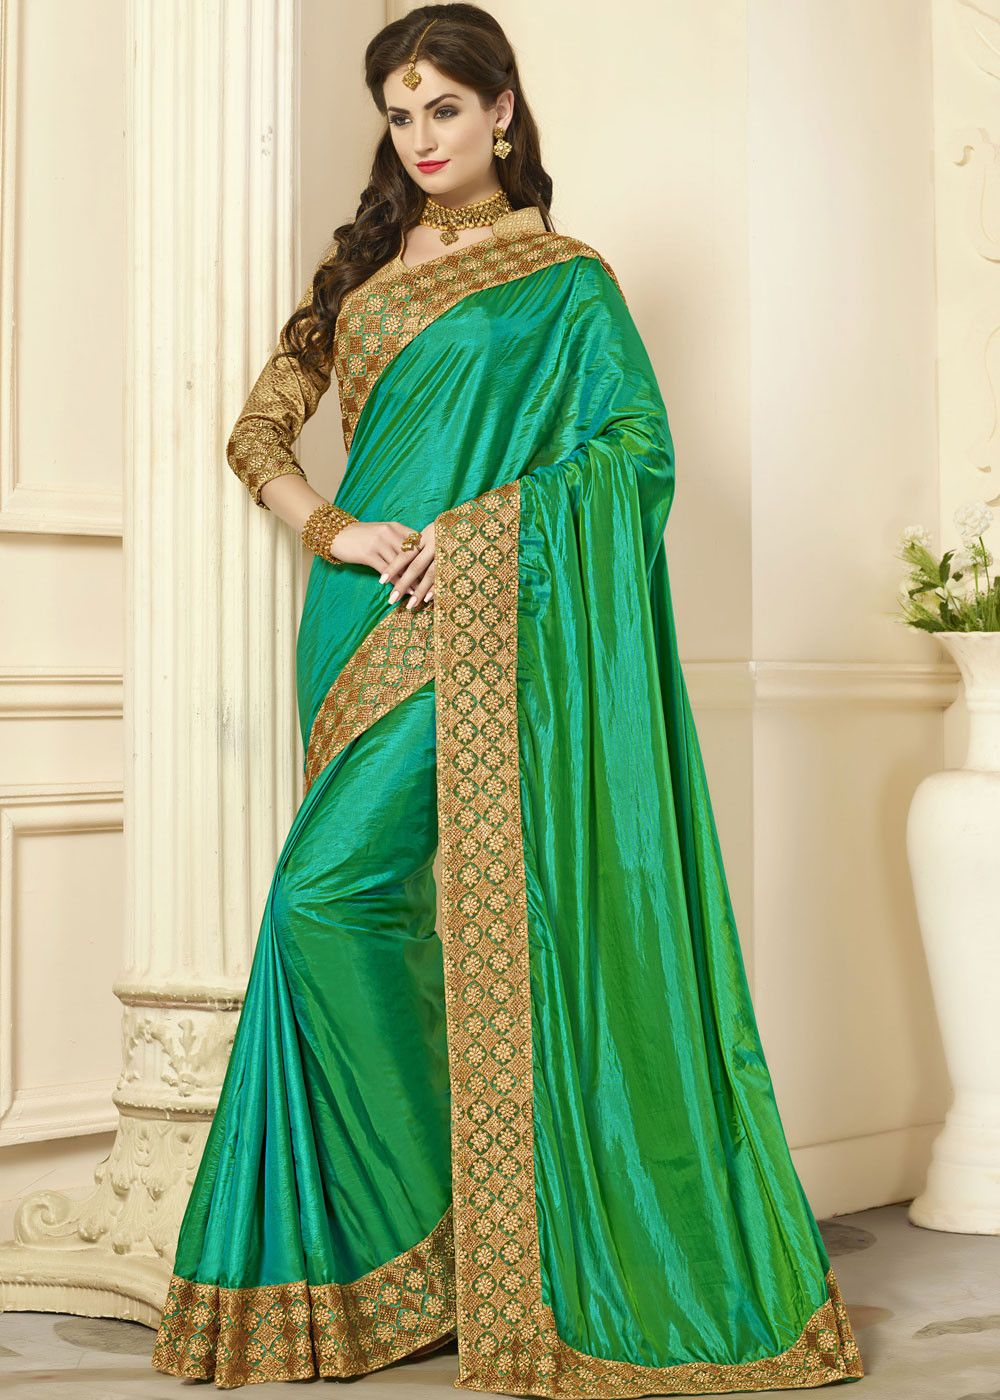 de6680271b #Green two toned paper #silksaree enhanced by decorative #lace borders in  #golden.